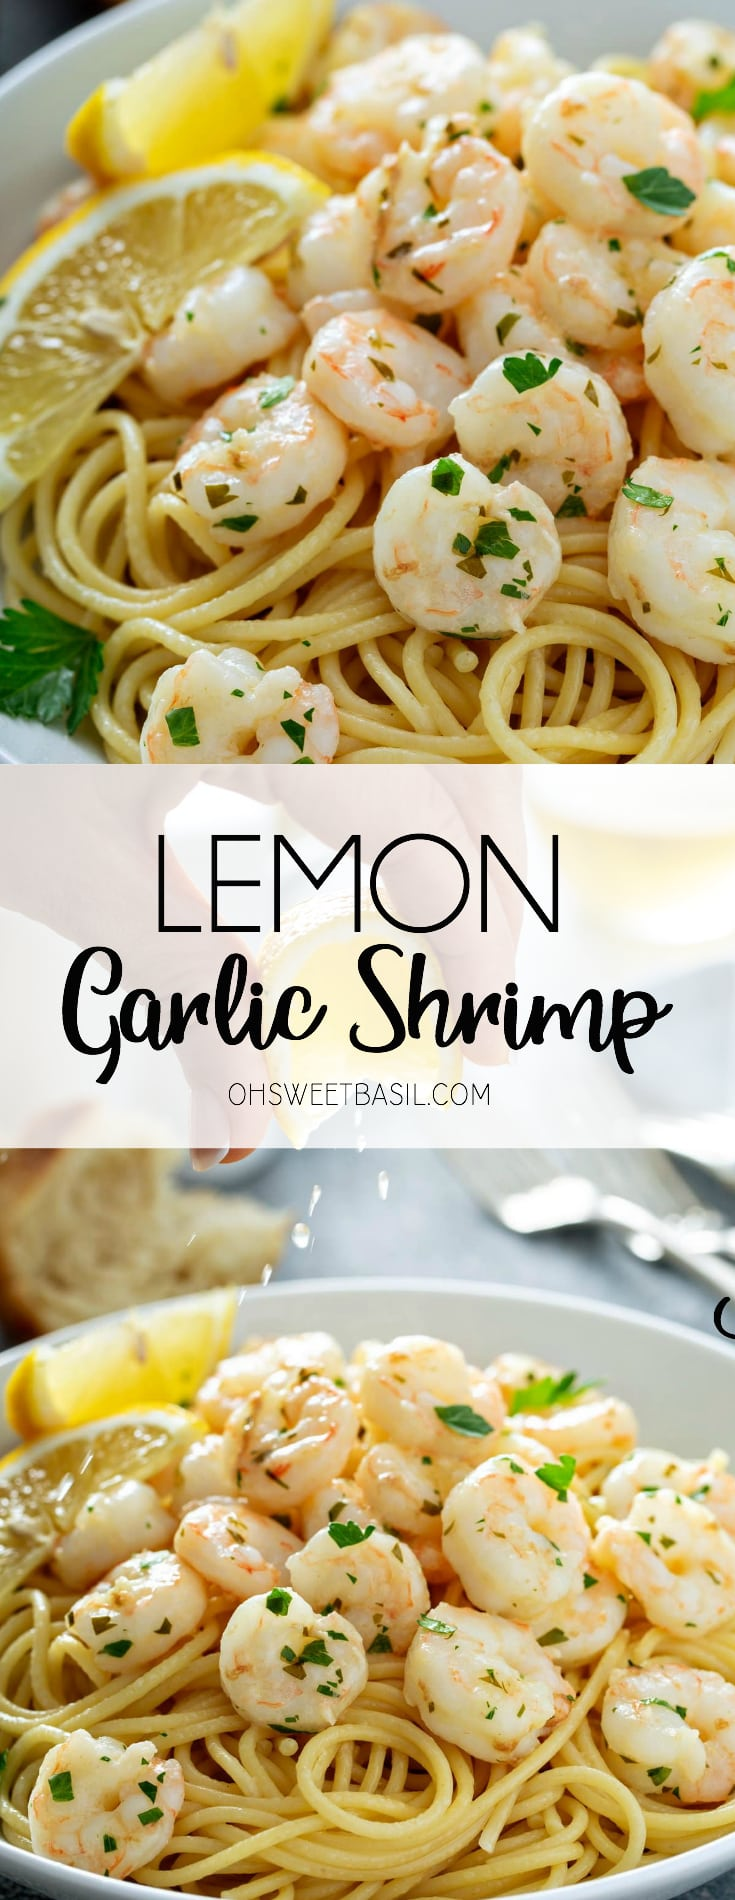 A serving plate of lemon garlic shrimp on pasta. There are two lemon wedges on the side and fresh parsley is sprinkled on top. There is some bread, three forks, and salt and pepper shakers in the background. A lemon wedge is being squeezed over the plate of shrimp.